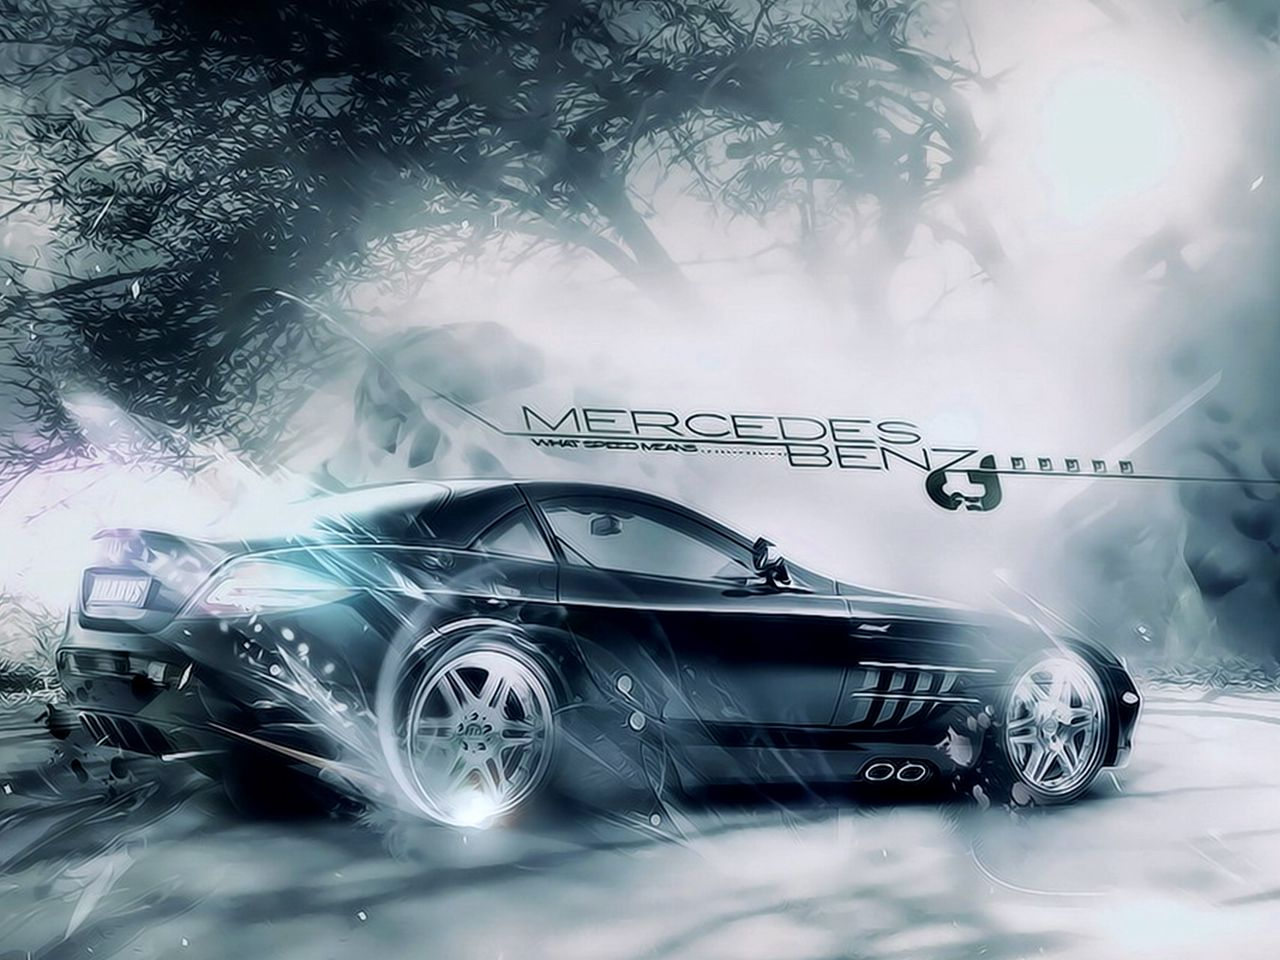 Black Cars Wallpapers HD Car Wallpapers 1280x960